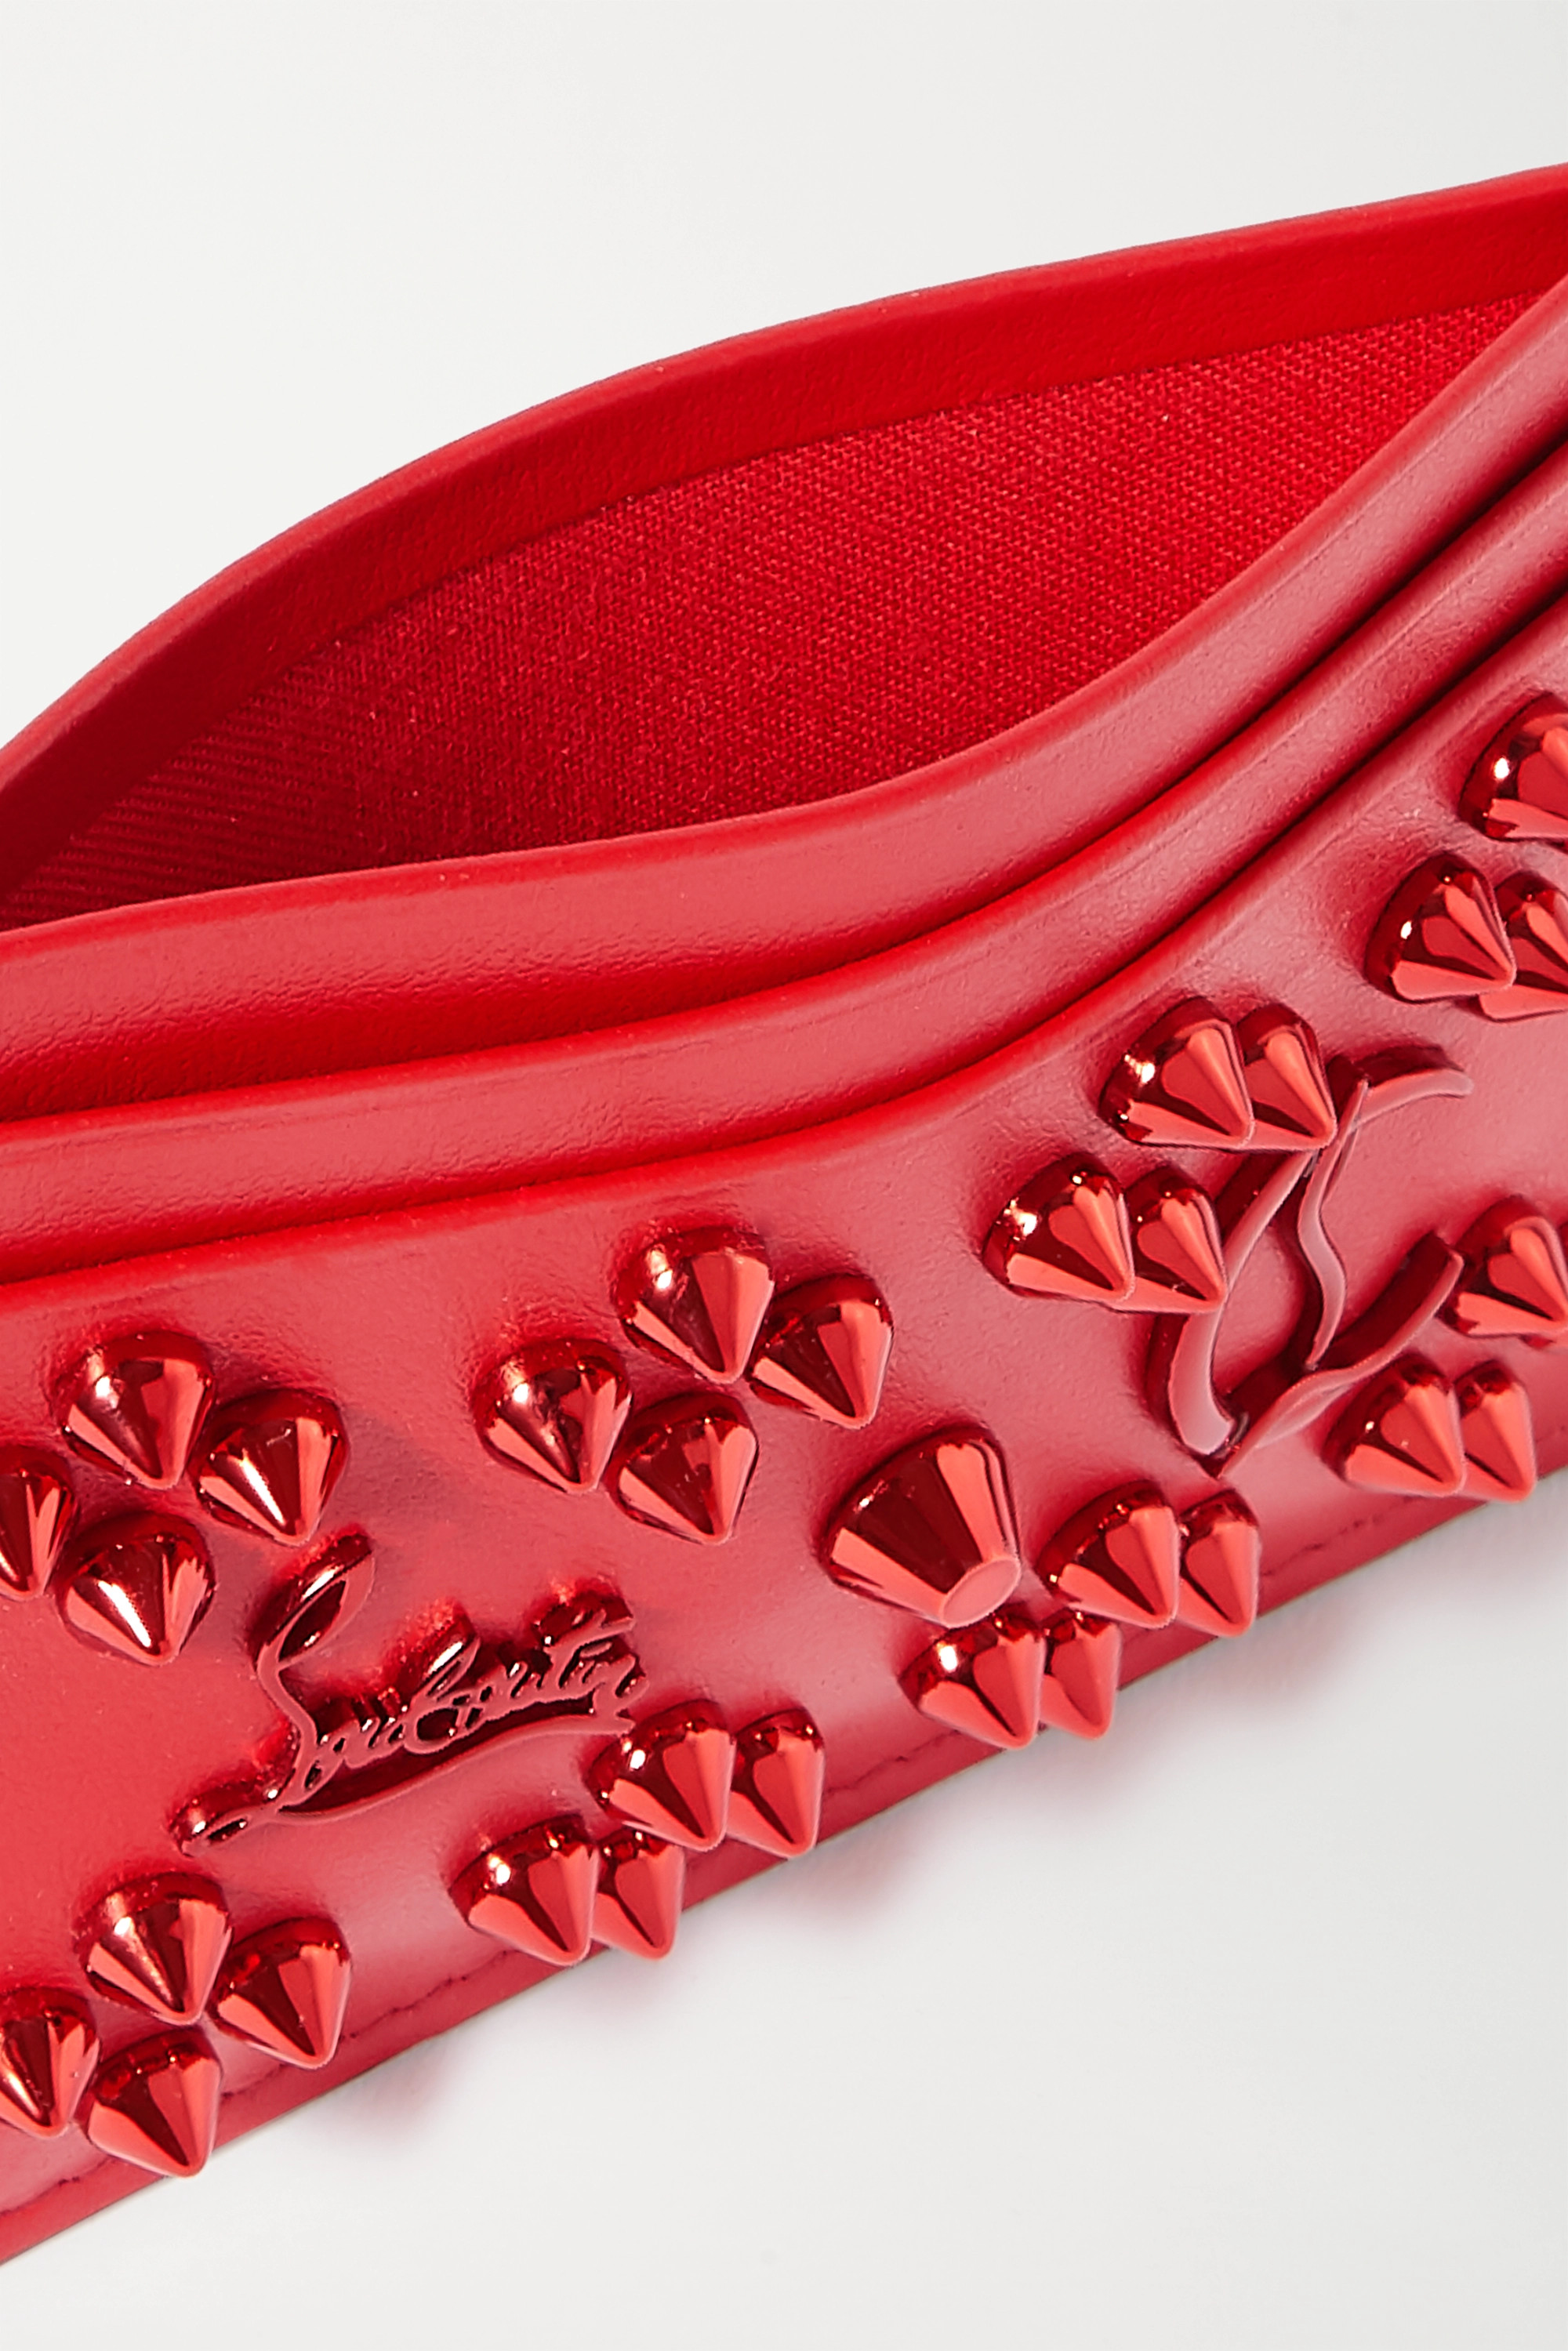 Red Kios spiked textured-leather